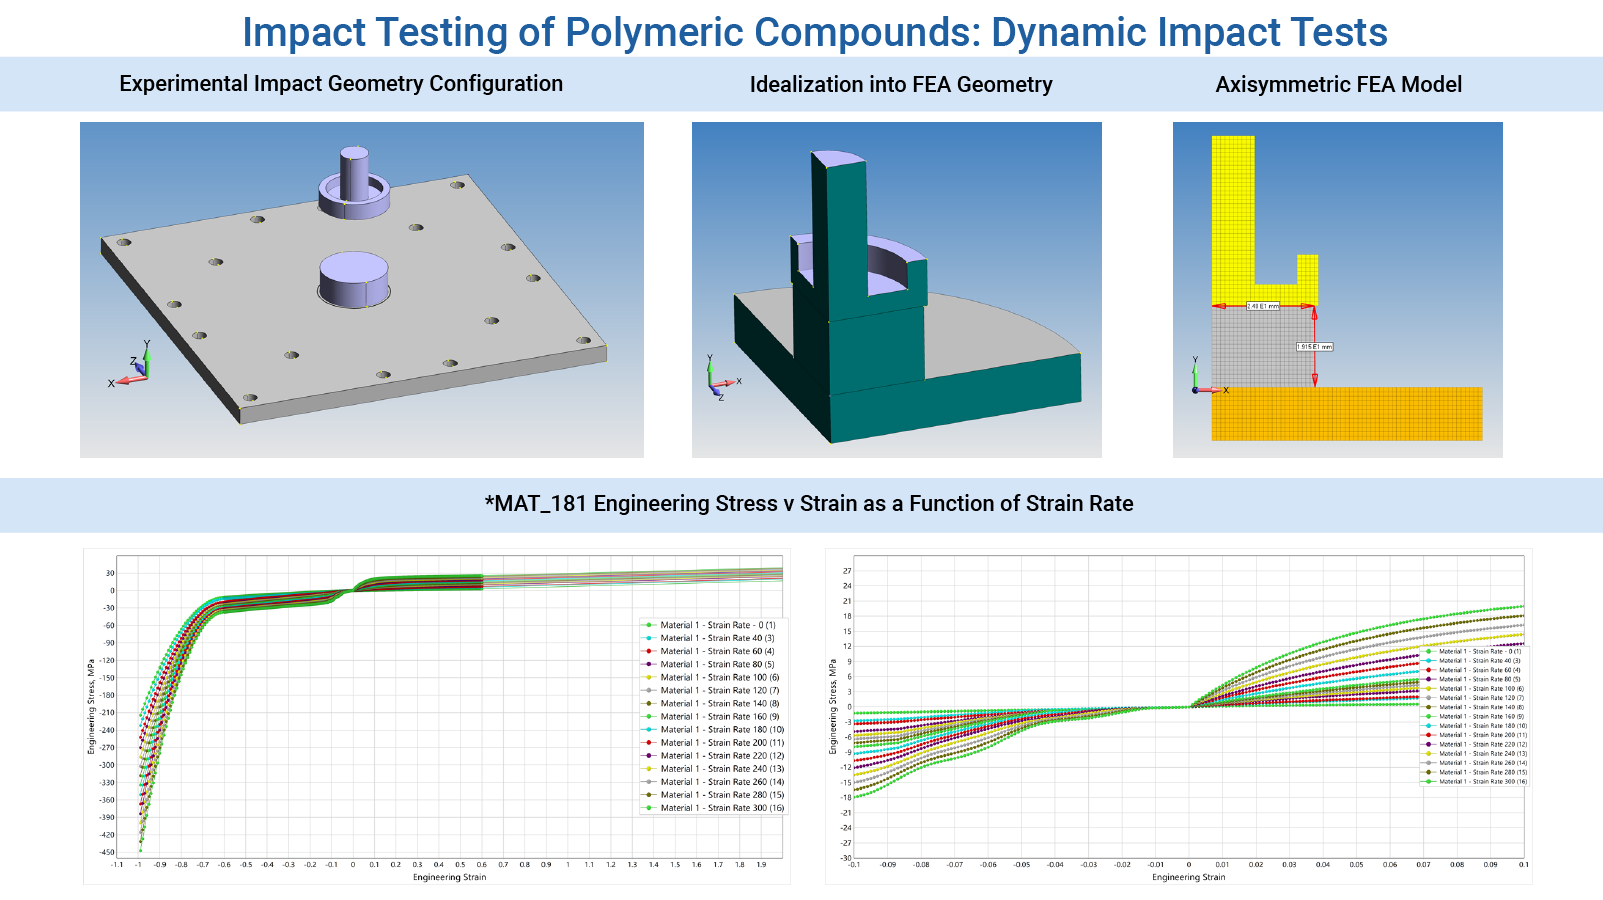 Impact Testing of Elastomeric Compounds - Dynamic Impact Tests to FEA Validation using LS-DYNA Engineering Services